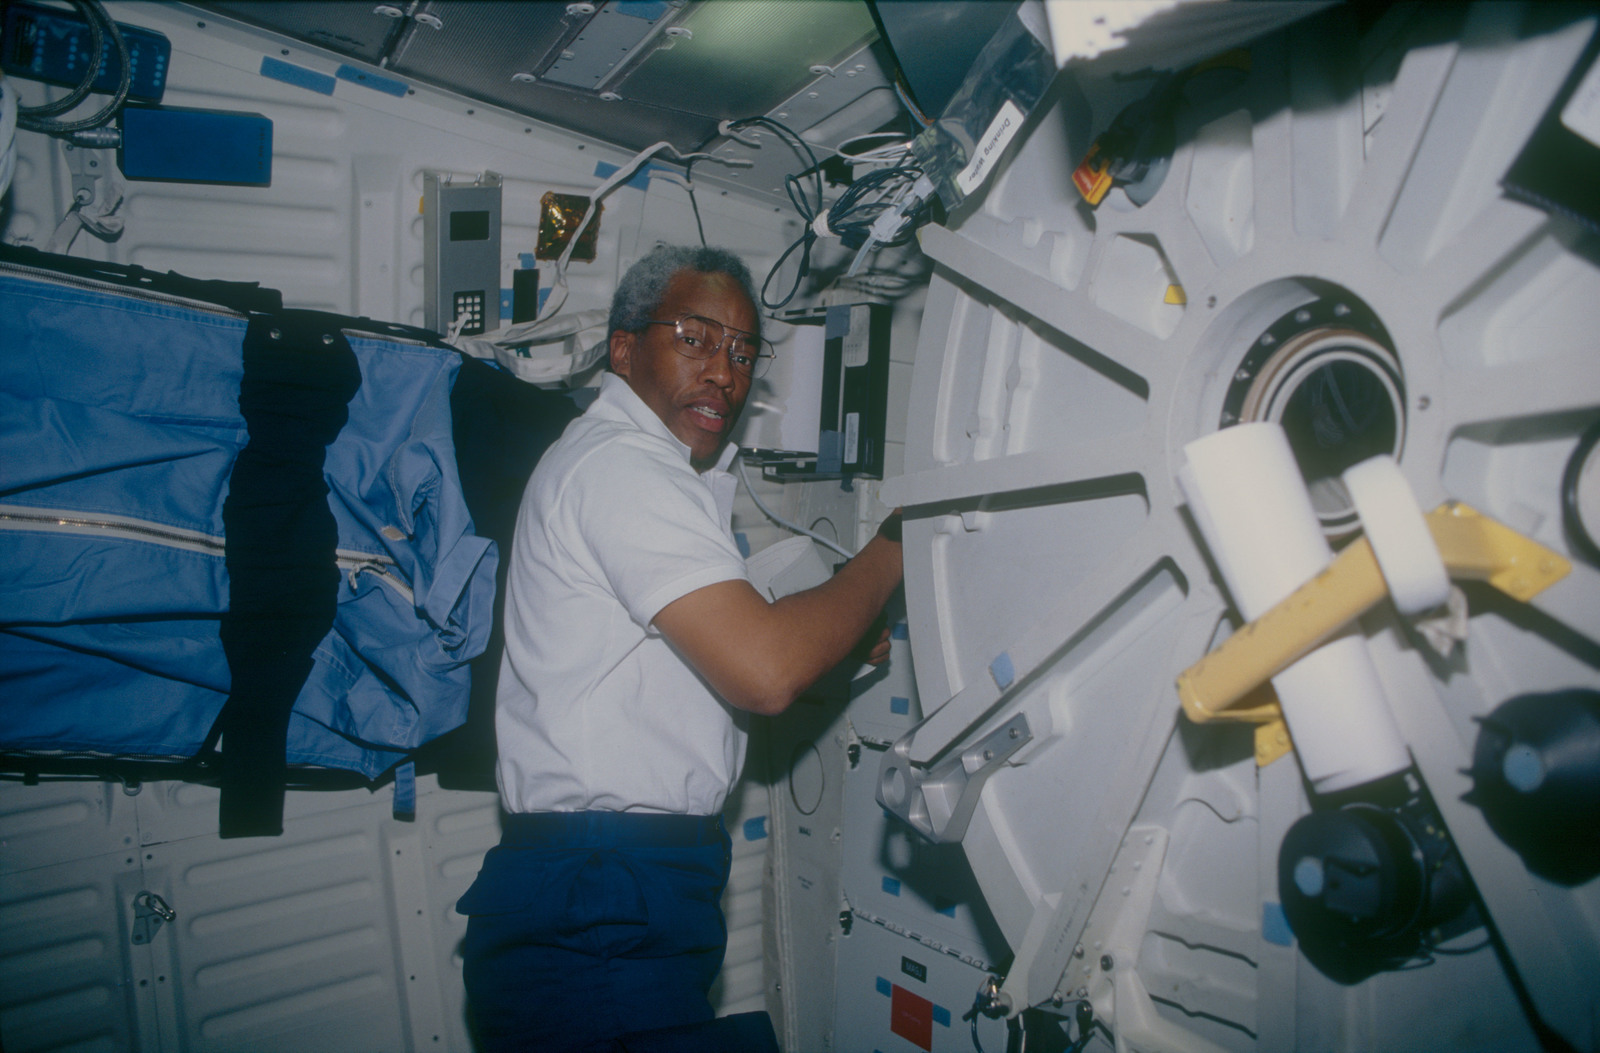 STS053-06-002 - STS-053 - Crewmember in the MDDK at the aft stowage lockers by the air lock